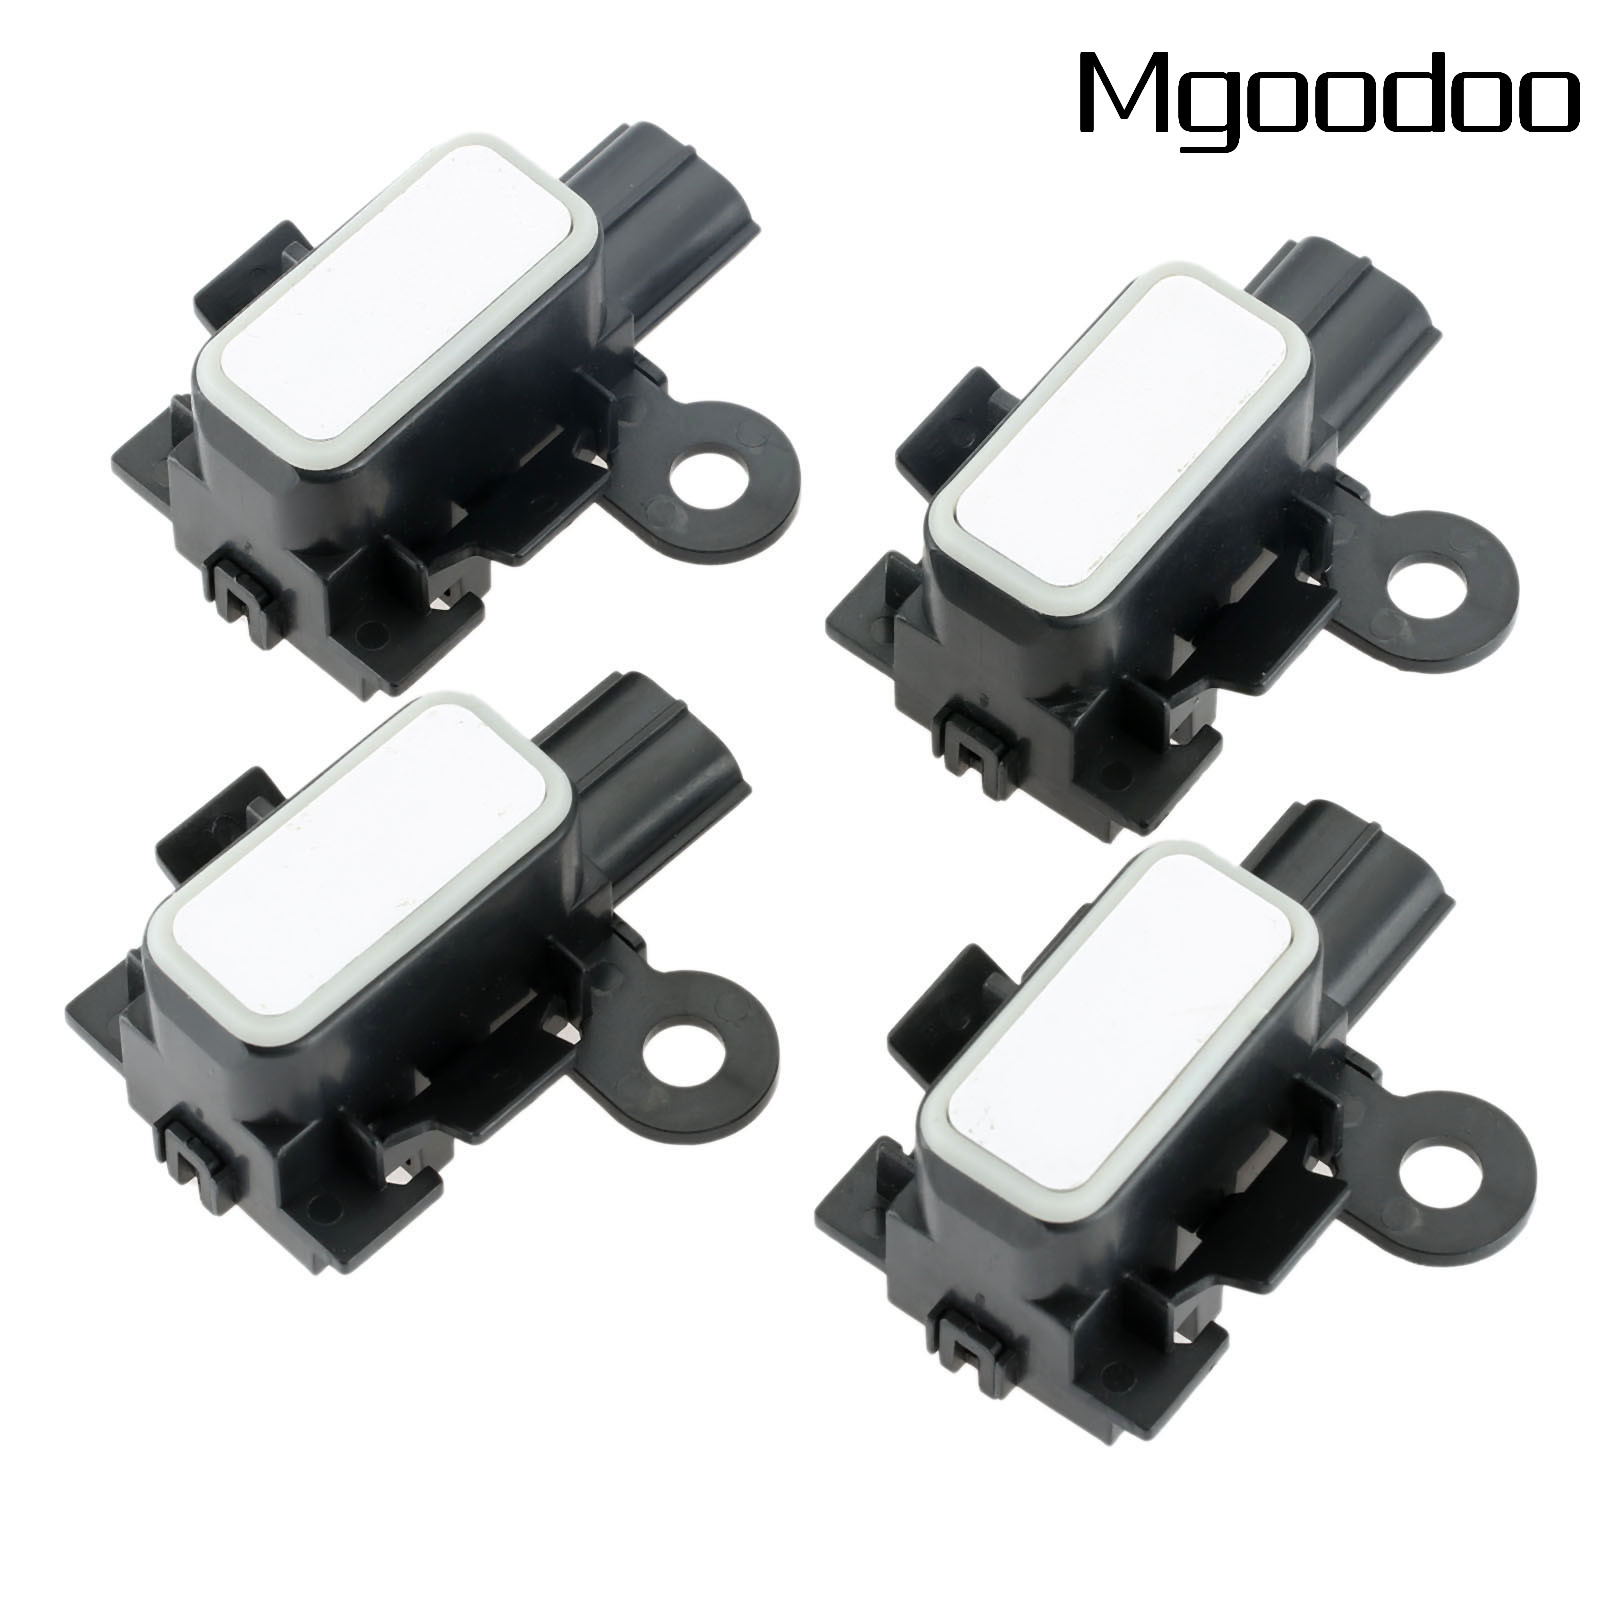 4x PDC Ultrasonic Parking Radar Sensor For Lexus GS300 GS350 GS430 GS450h GS460 89341-44150-B2 89341-44150 Parktronic Sensor NEW